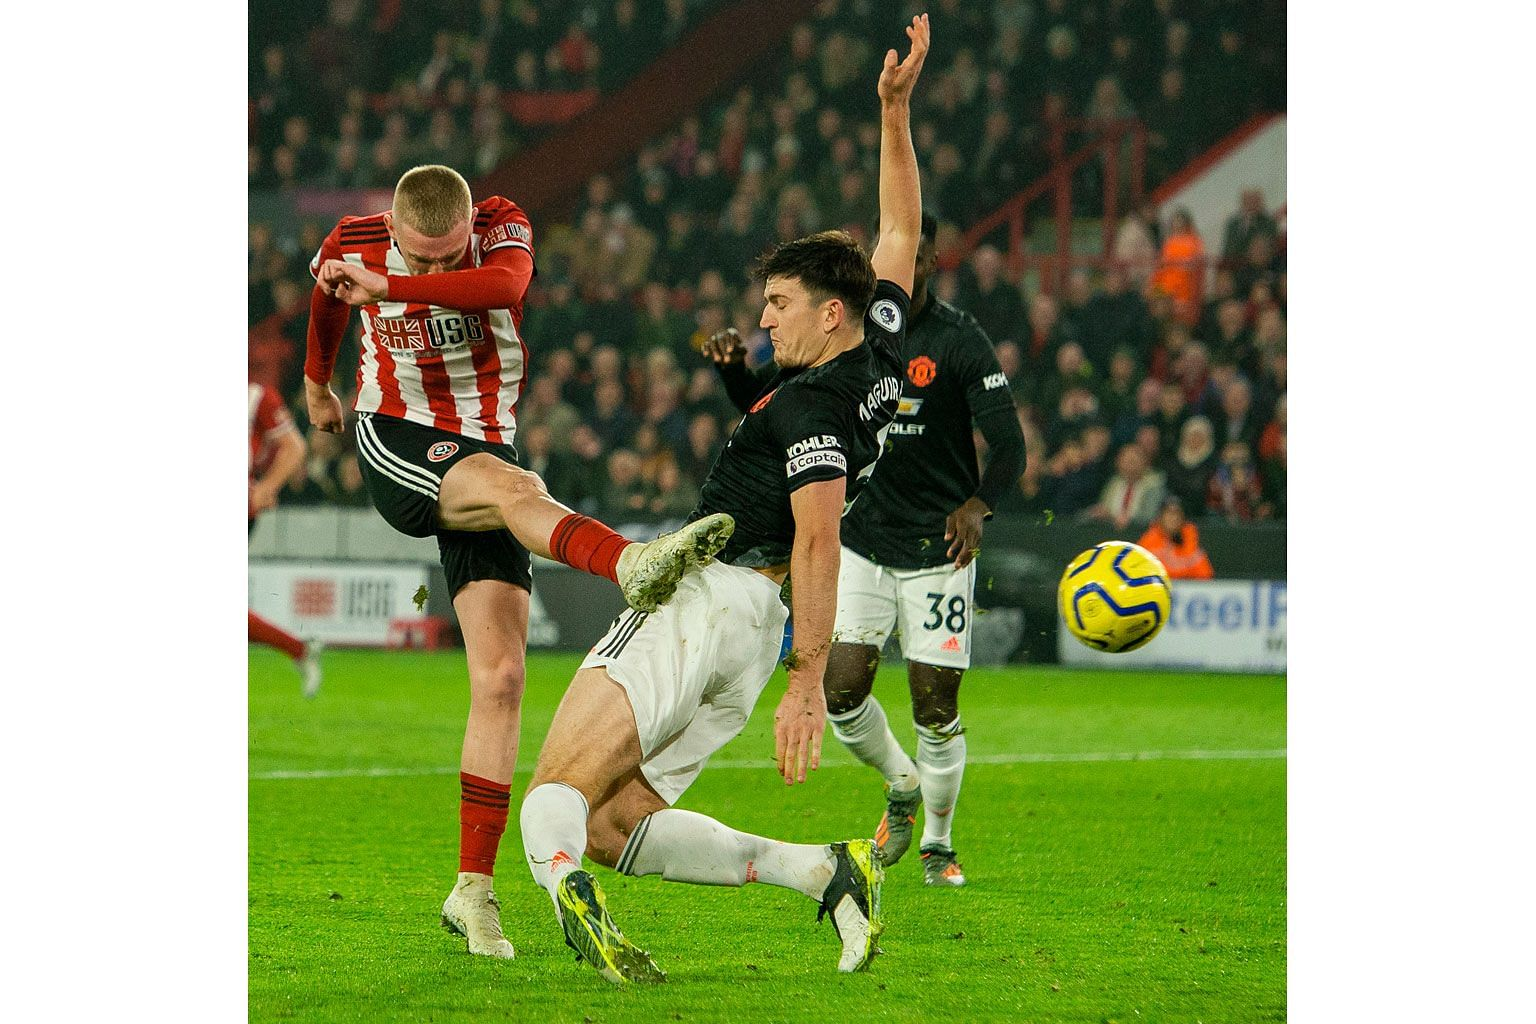 Sheffield United's Oli McBurnie beating Manchester United defender Harry Maguire to the ball to make it 3-3 in the 90th minute in their English Premier League match at Bramall Lane on Sunday. PHOTO: EPA-EFE